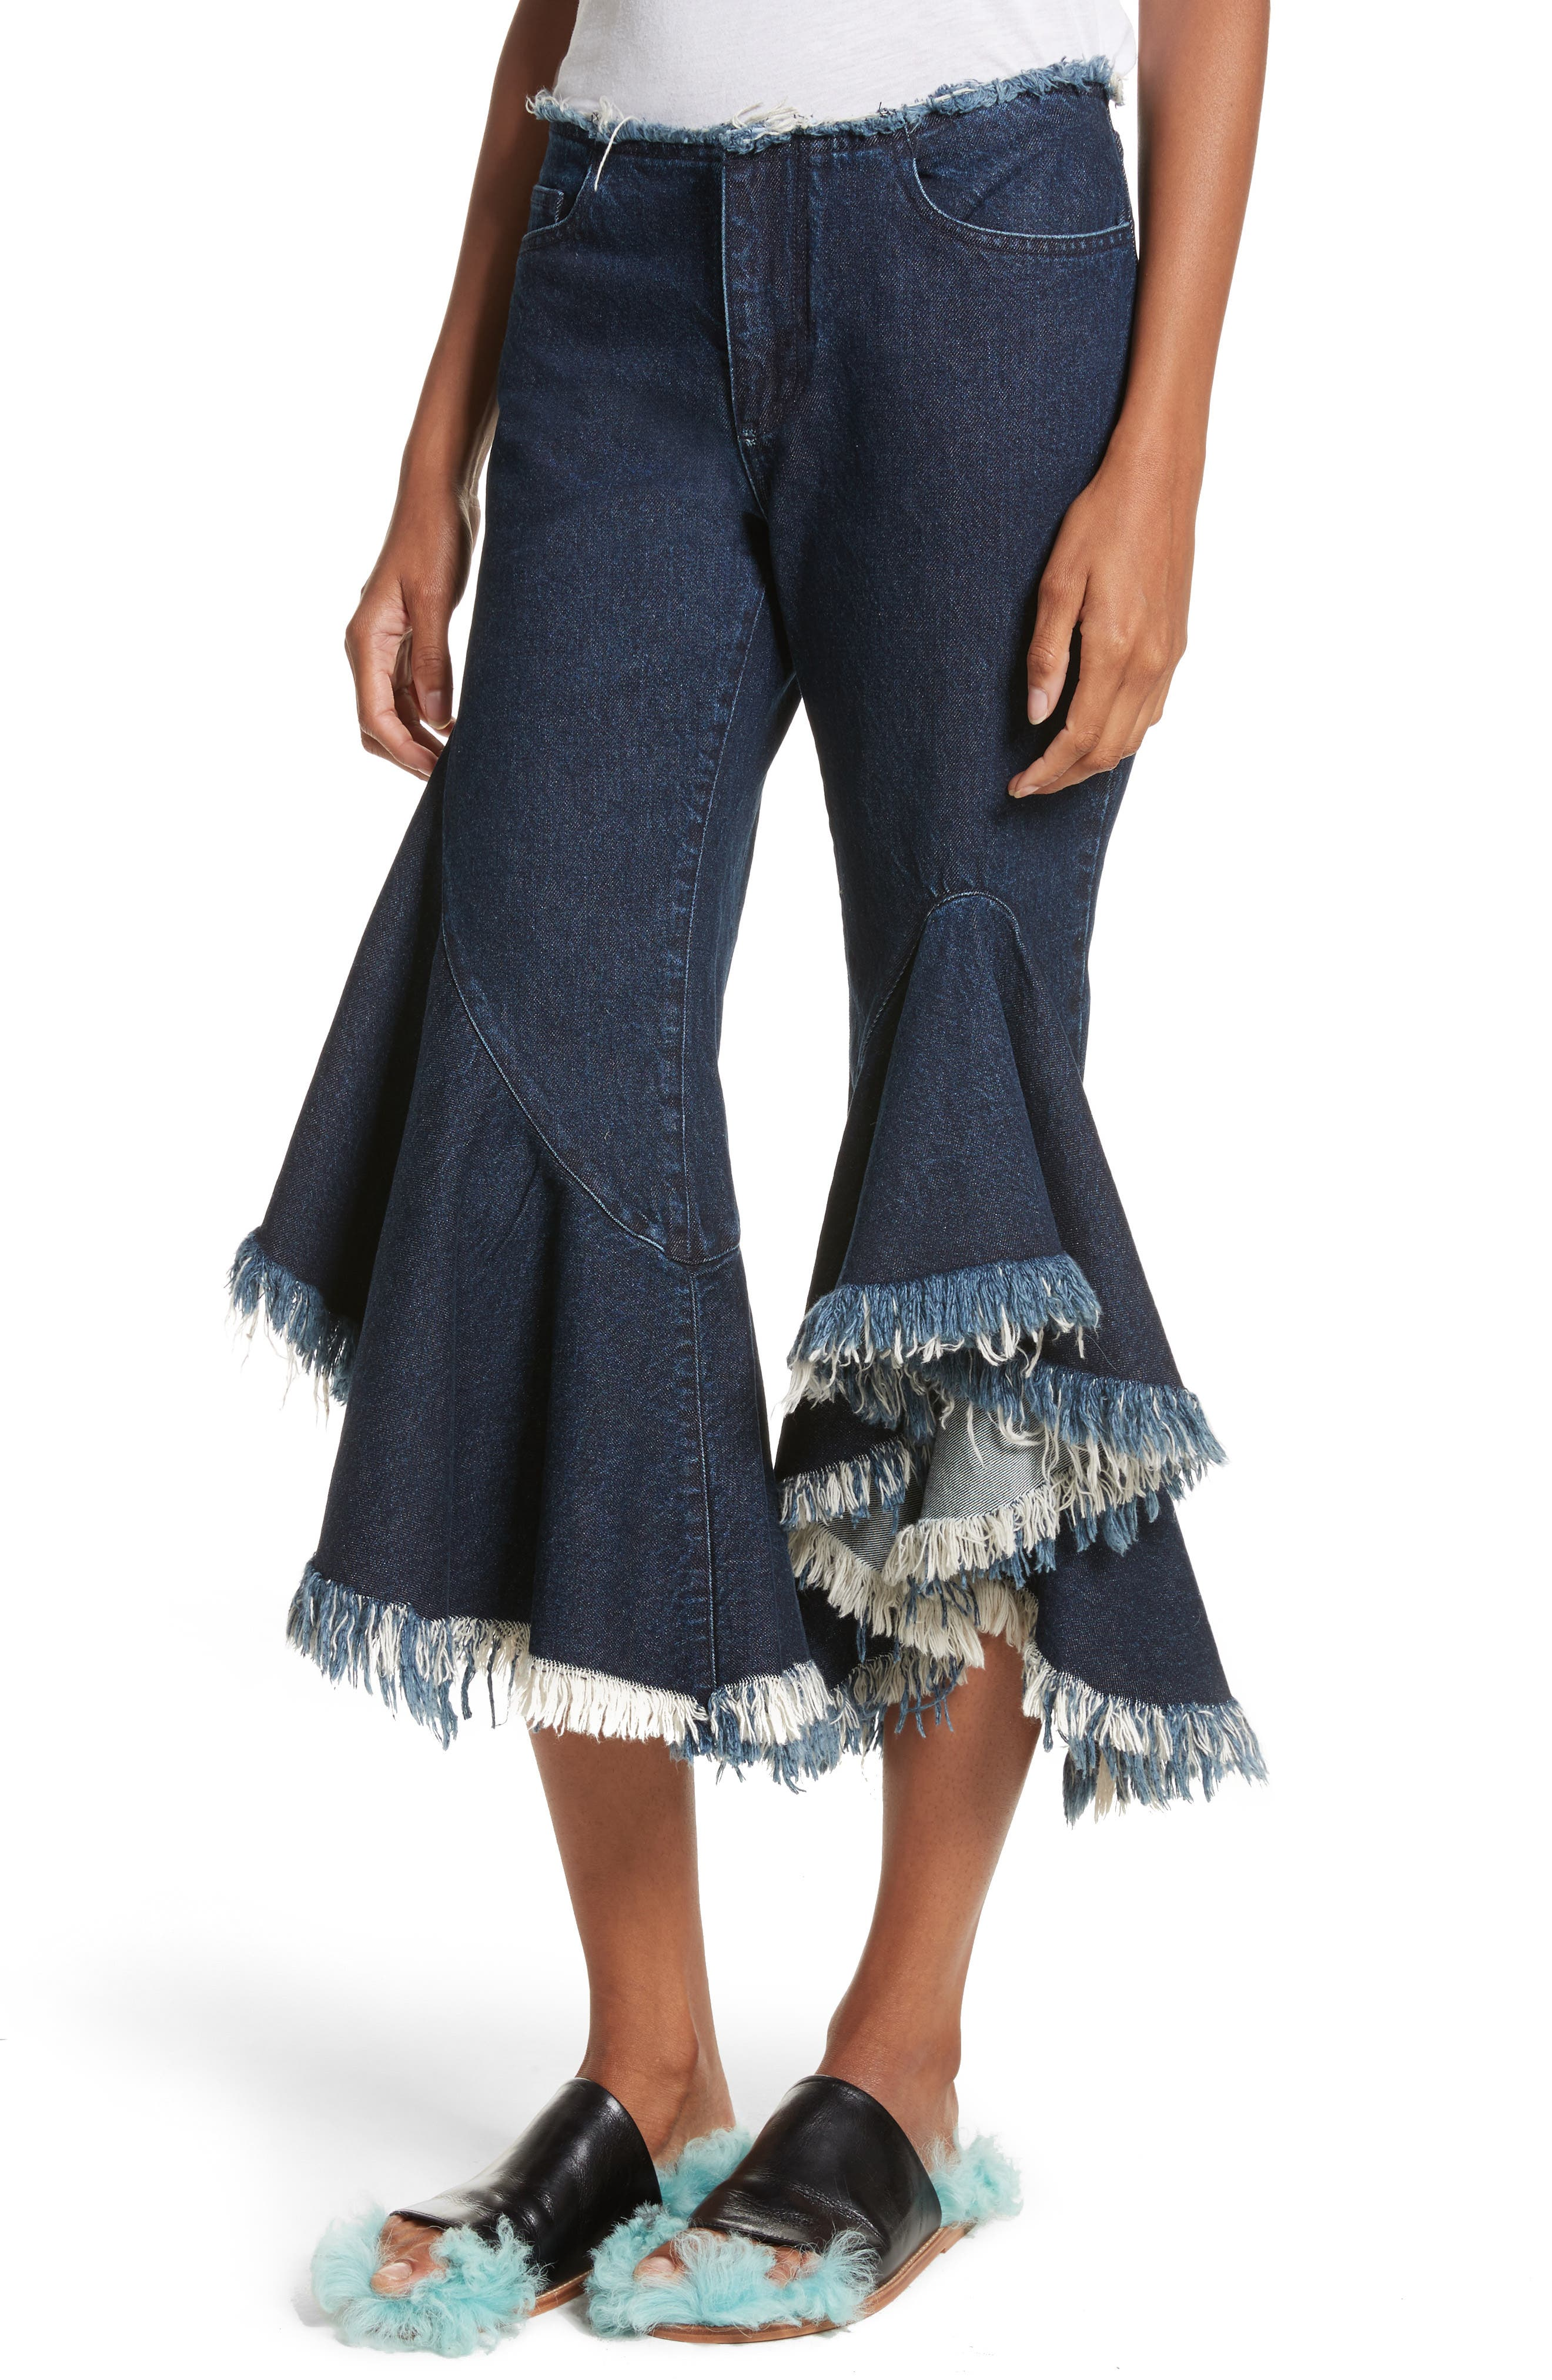 Marques'Almeida Frill Flare Crop Jeans,                             Alternate thumbnail 4, color,                             400